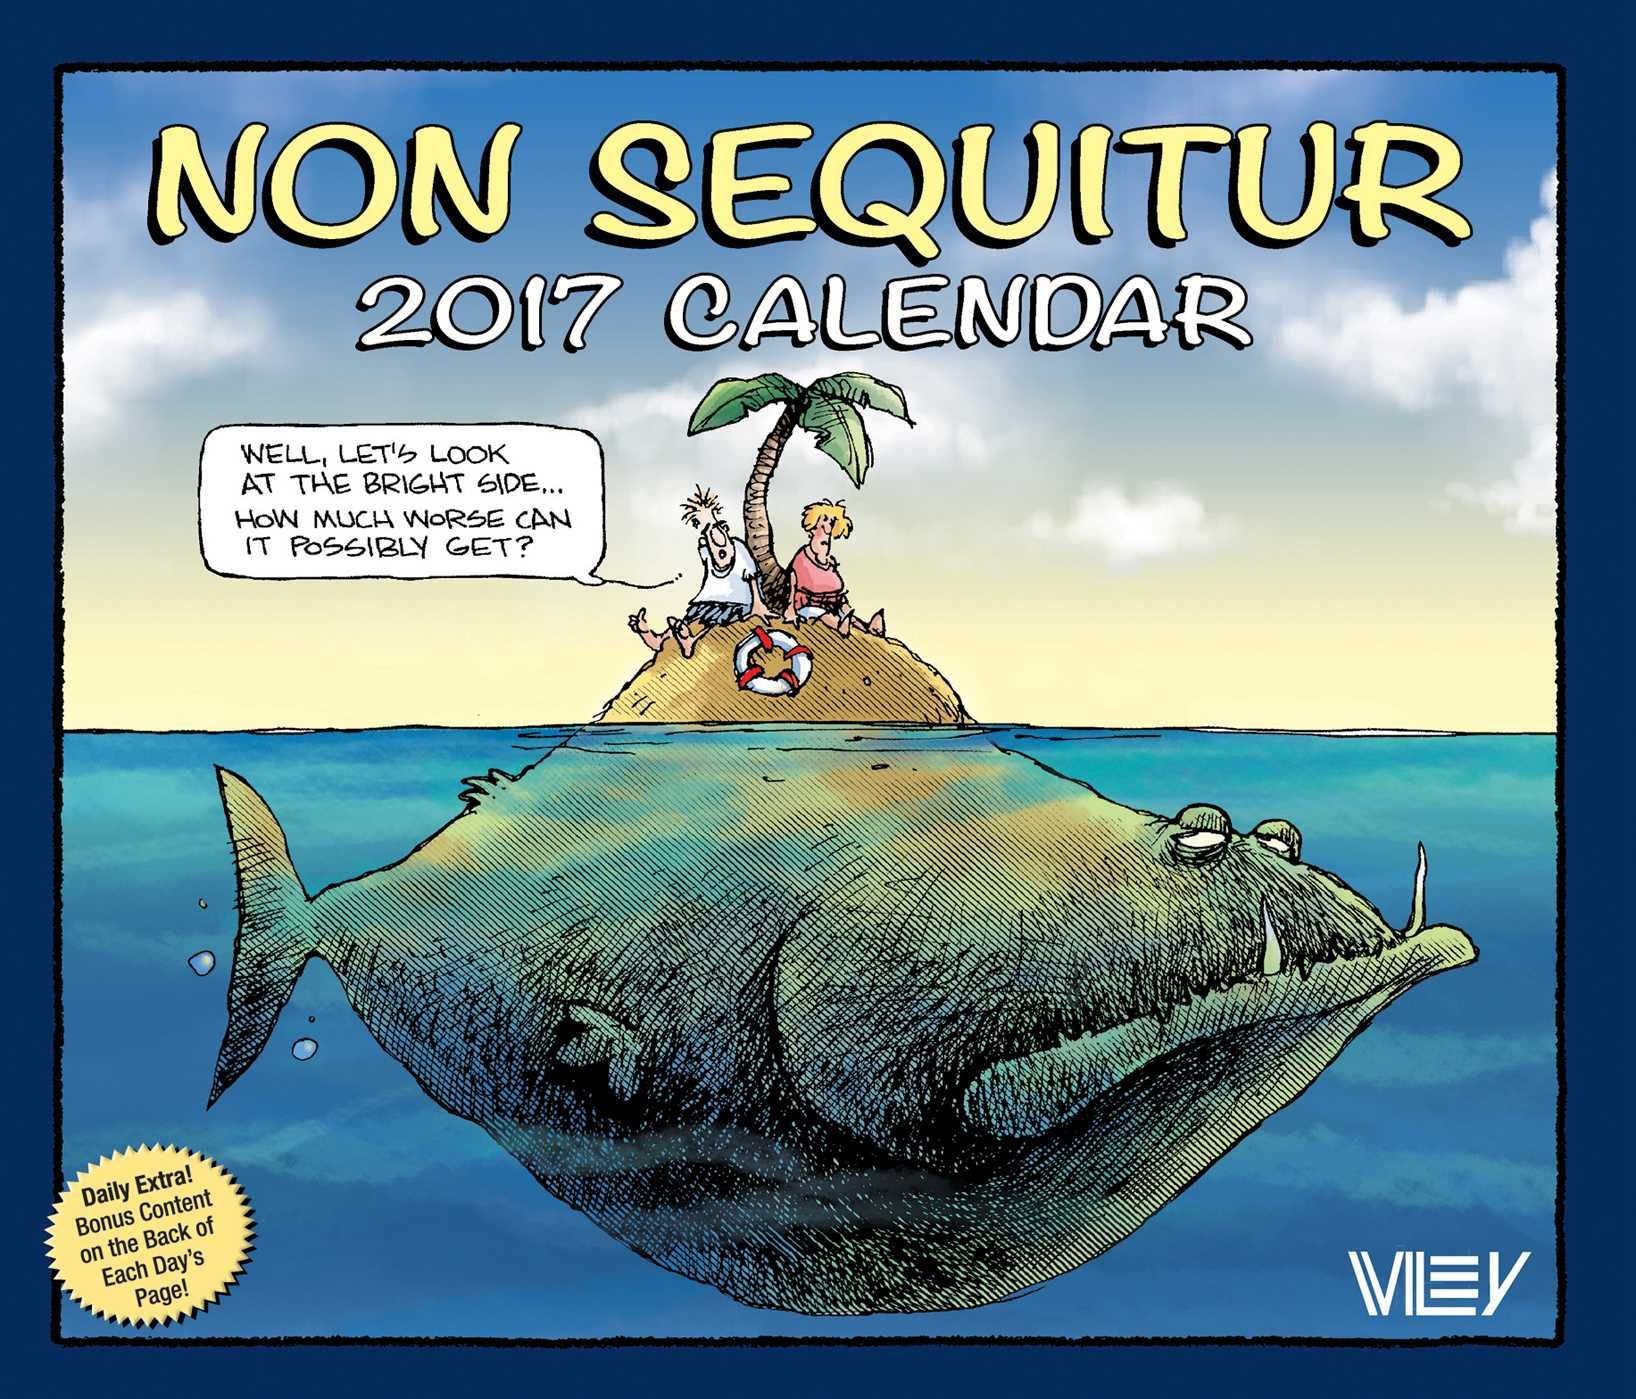 Sequitur 2017 Day Day Calendar product image